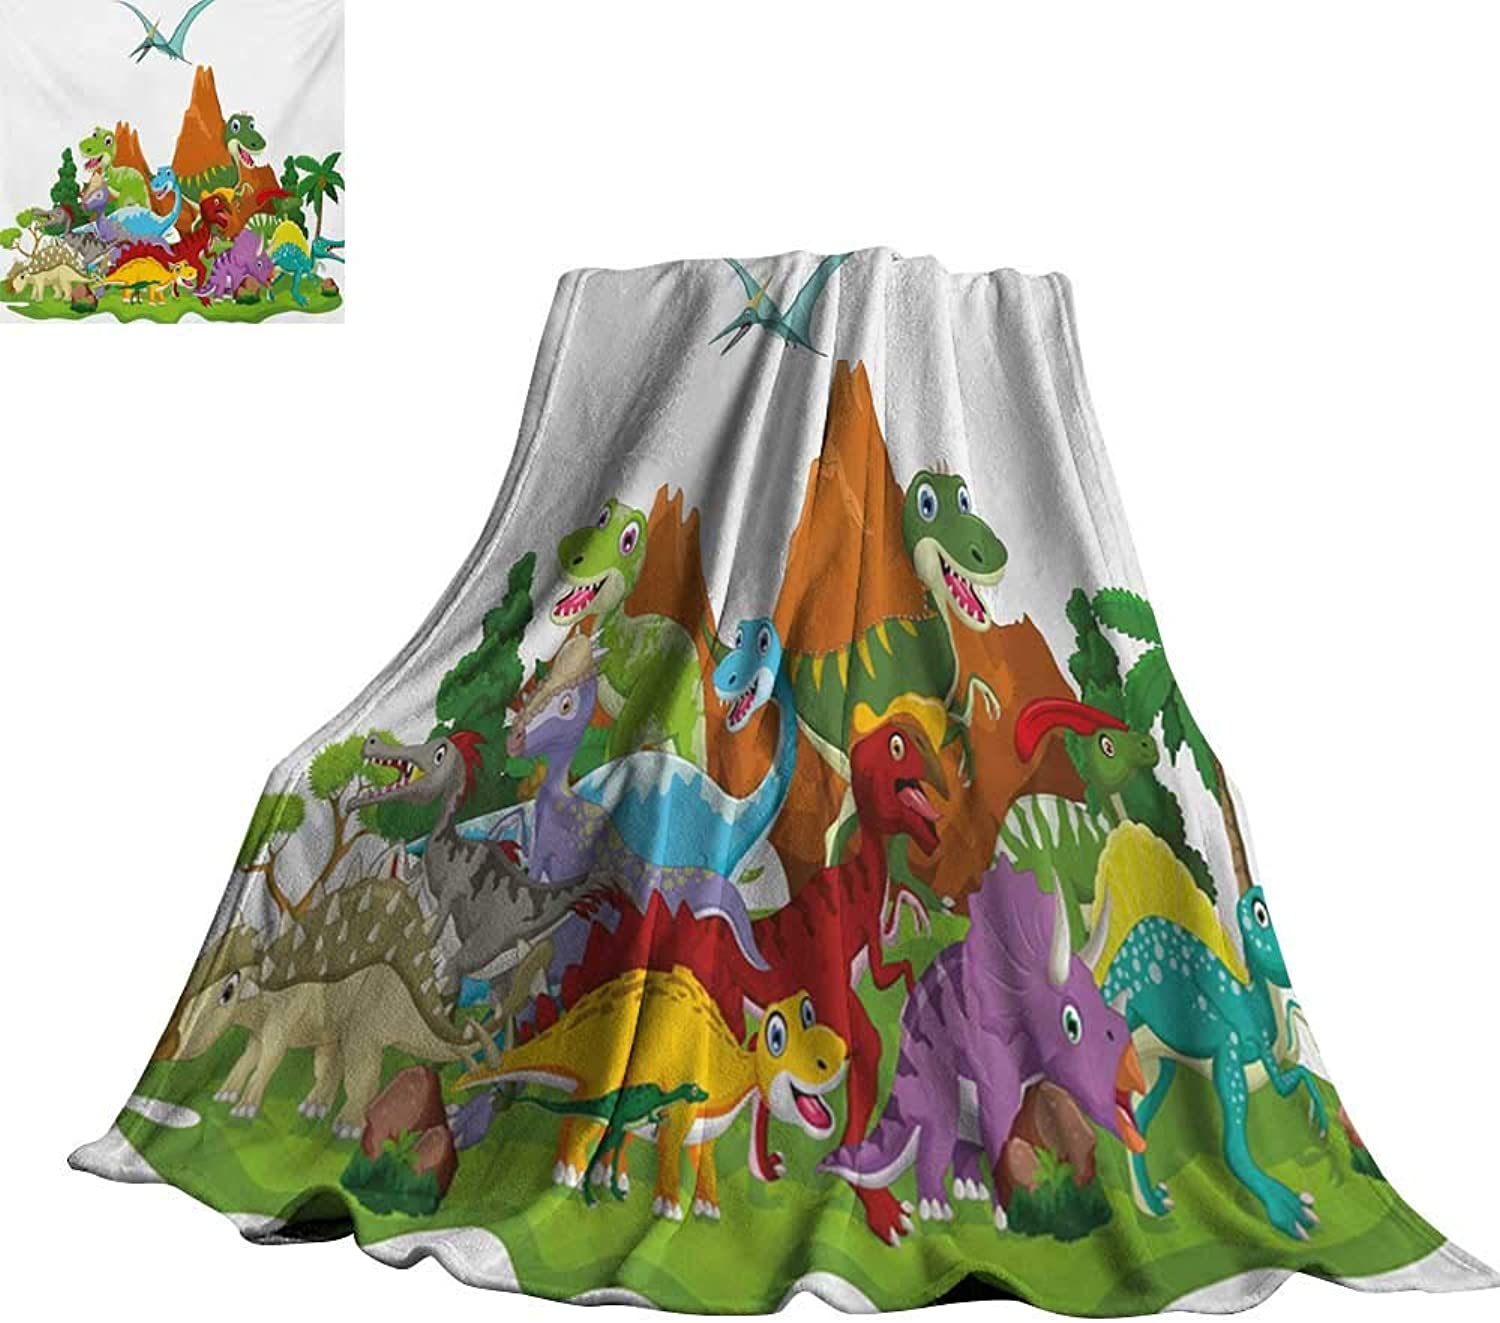 RenteriaDecor Dinosaur,Digital Printing Blanket Funny Friendly Dinosaurs in Cartoon Style and Landscape with Trees and Mountain Comfortable and Warm Beach Blanket 70 x50